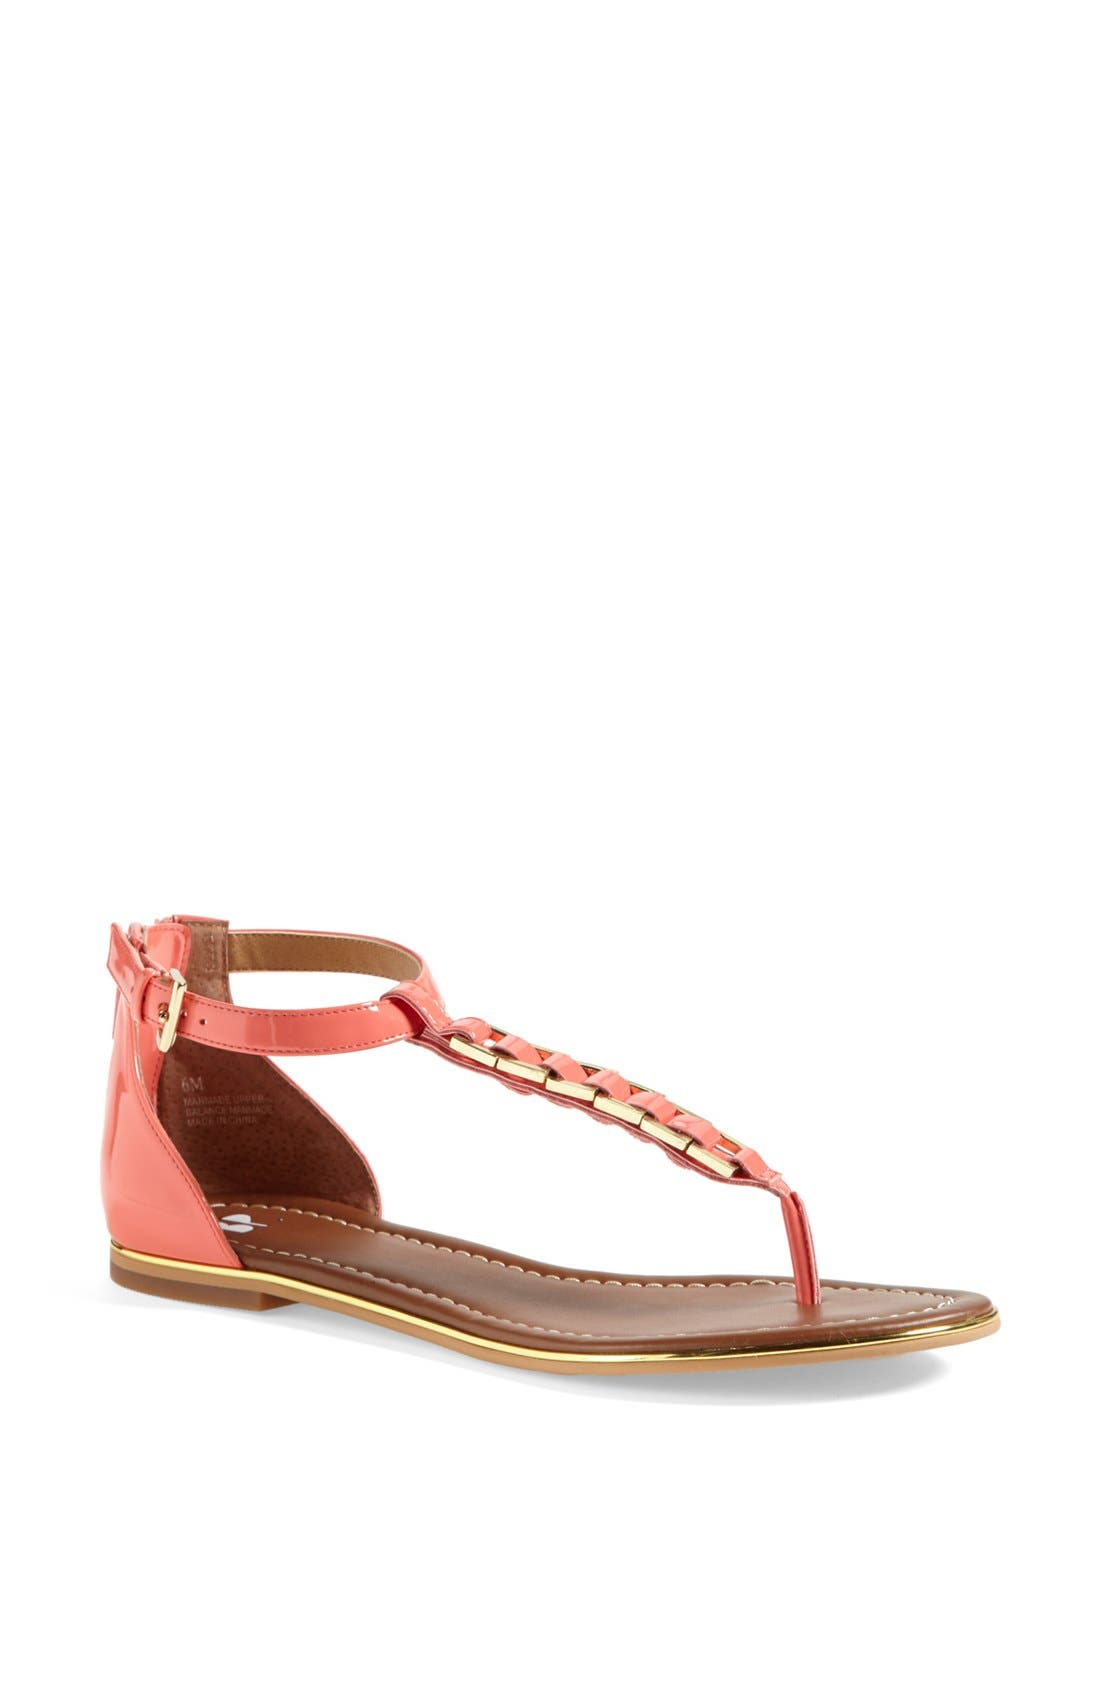 'Bonsai' Sandal,                         Main,                         color, Coral Patent